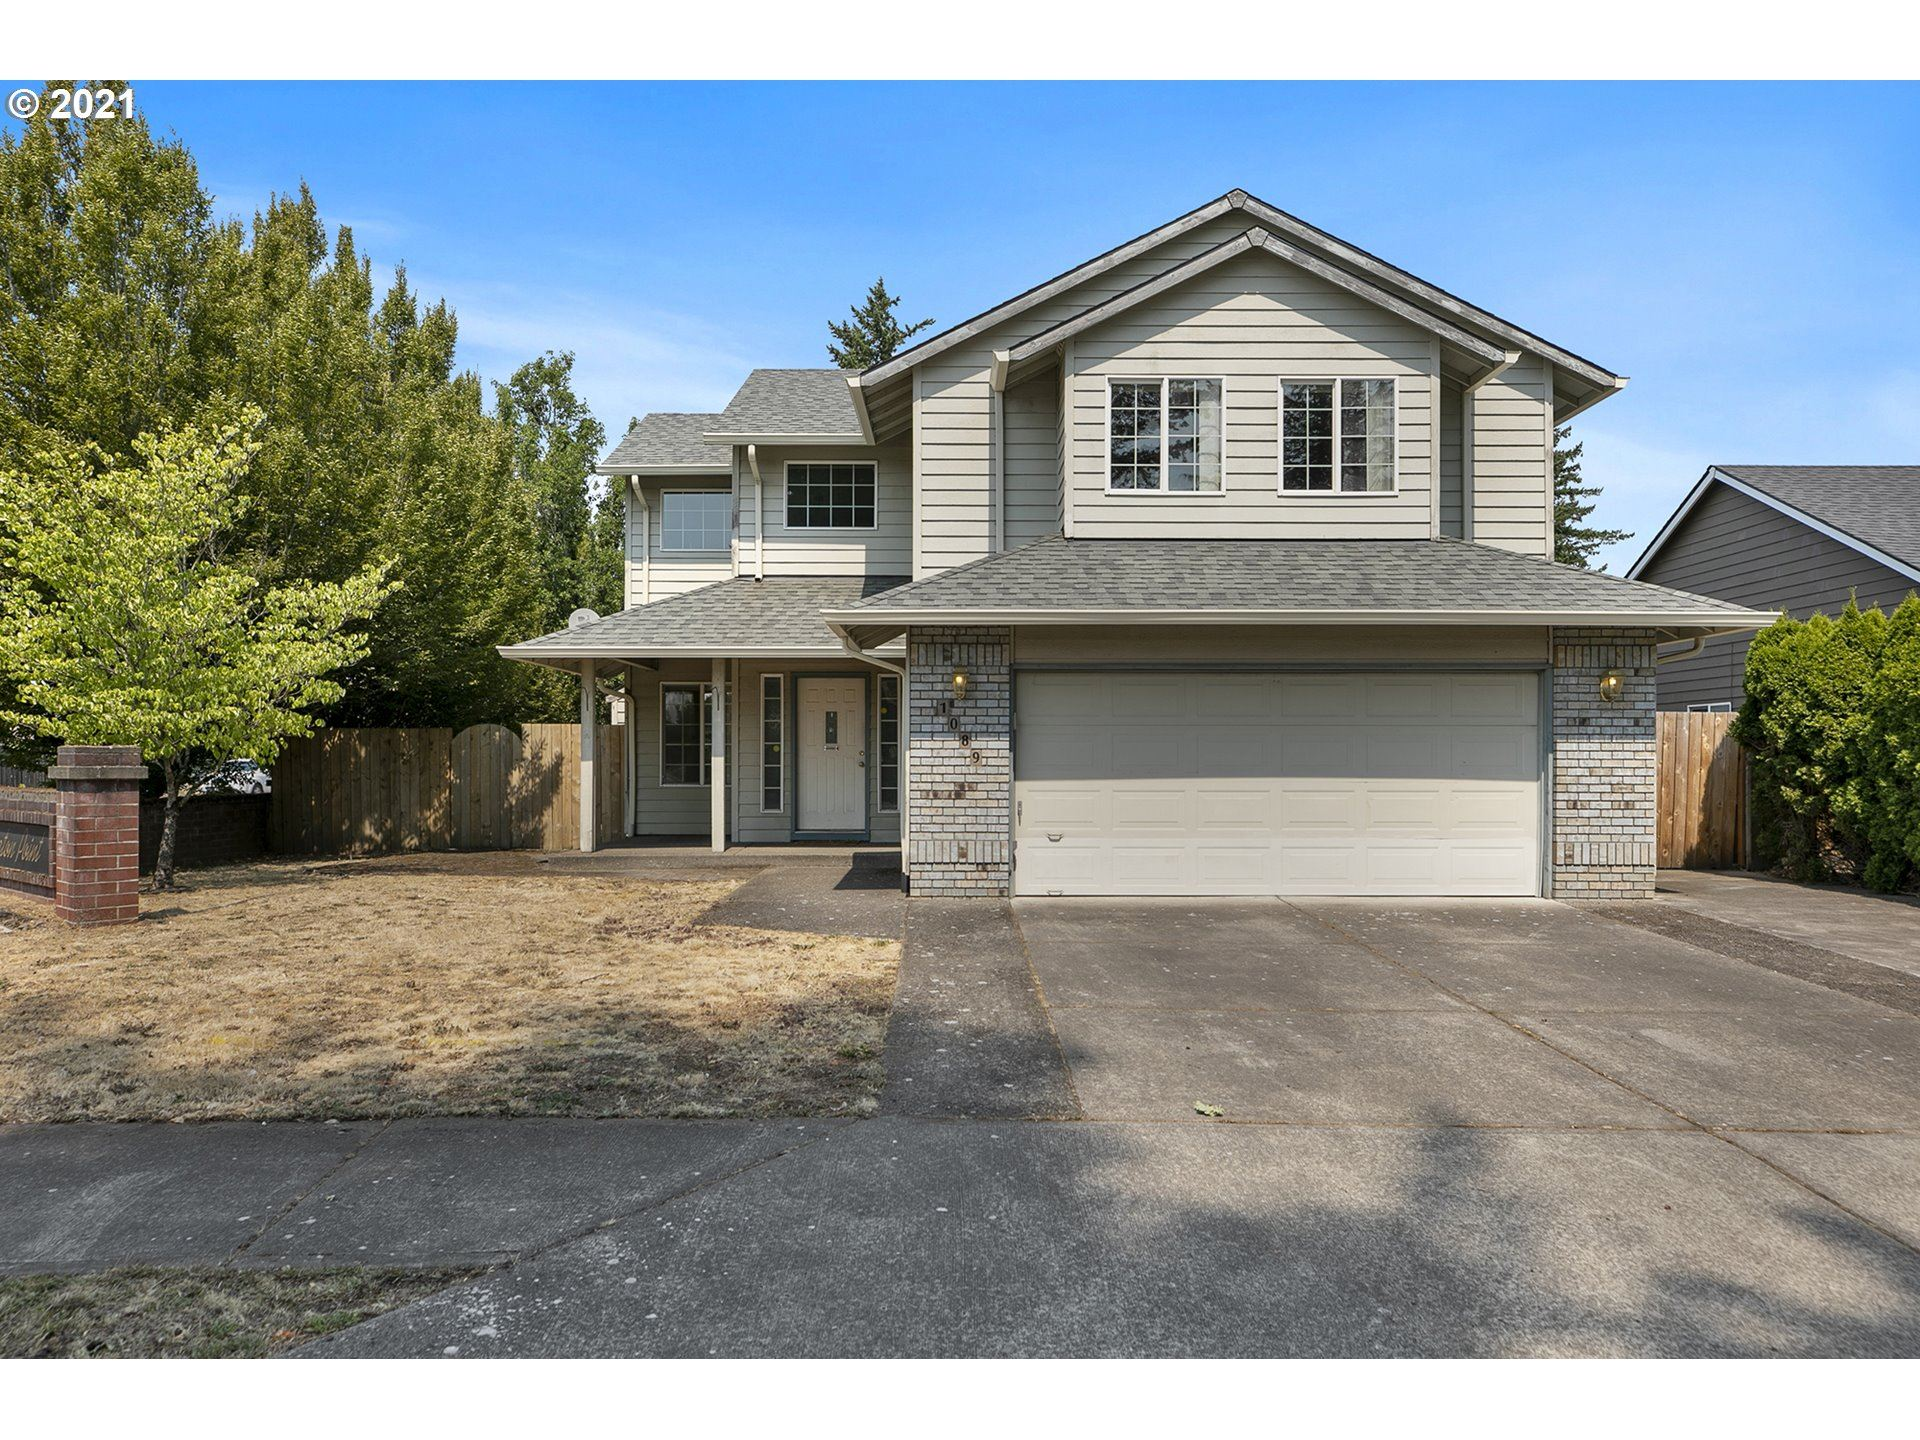 1089 SW 26TH ST, Troutdale, OR 97060 - MLS#: 21189295